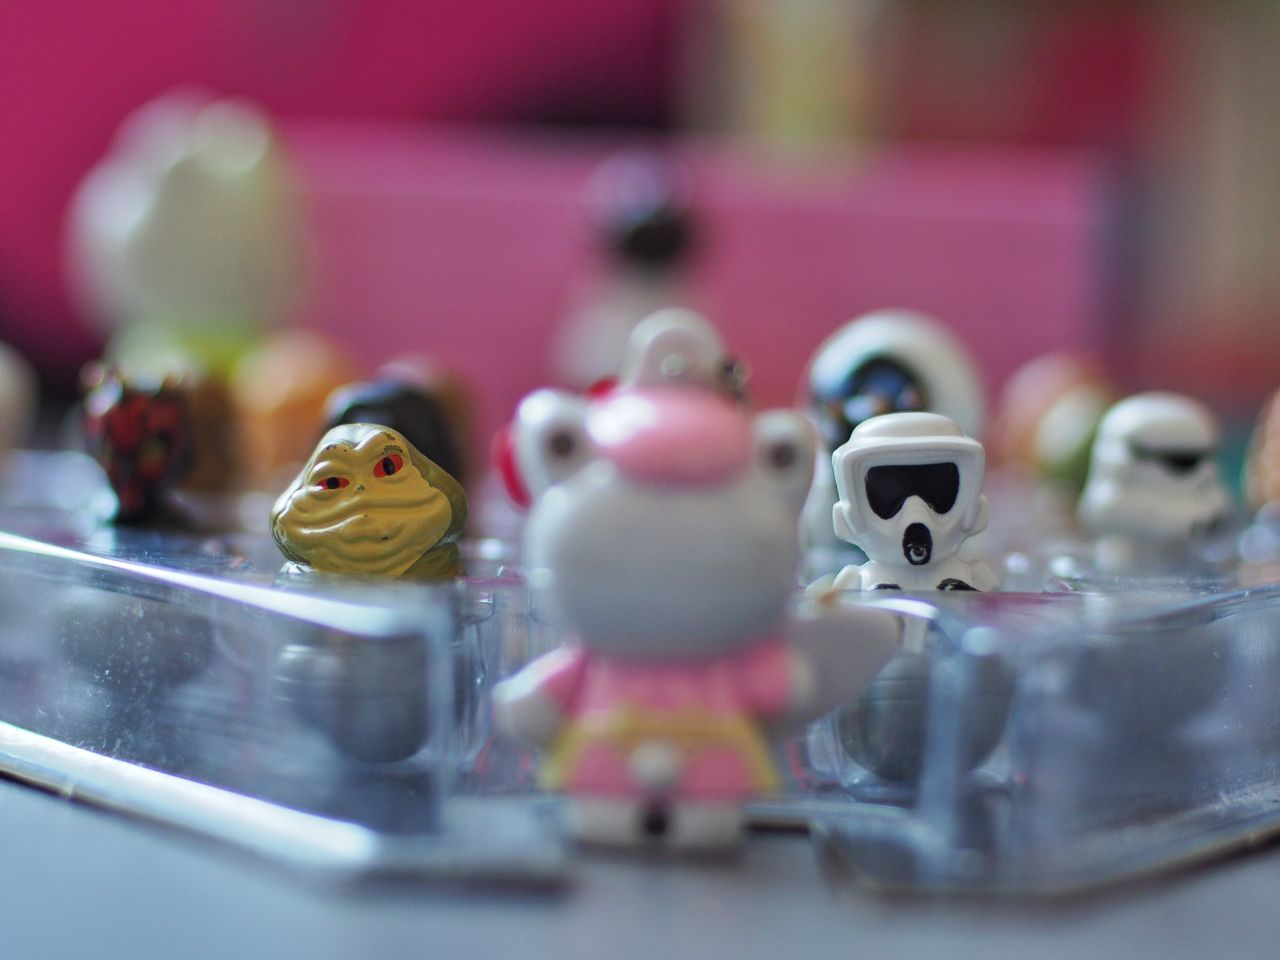 teacher in space Space Star Wars Classroom Teachers Drone  Bokeh Blurred Background Sfocato Hello Kitty Jabba Scouttrooper Chewbacca Darthvader Darth Maul Boba Fett Obi Wan Kenobi SpaceShip Close-up Plastic